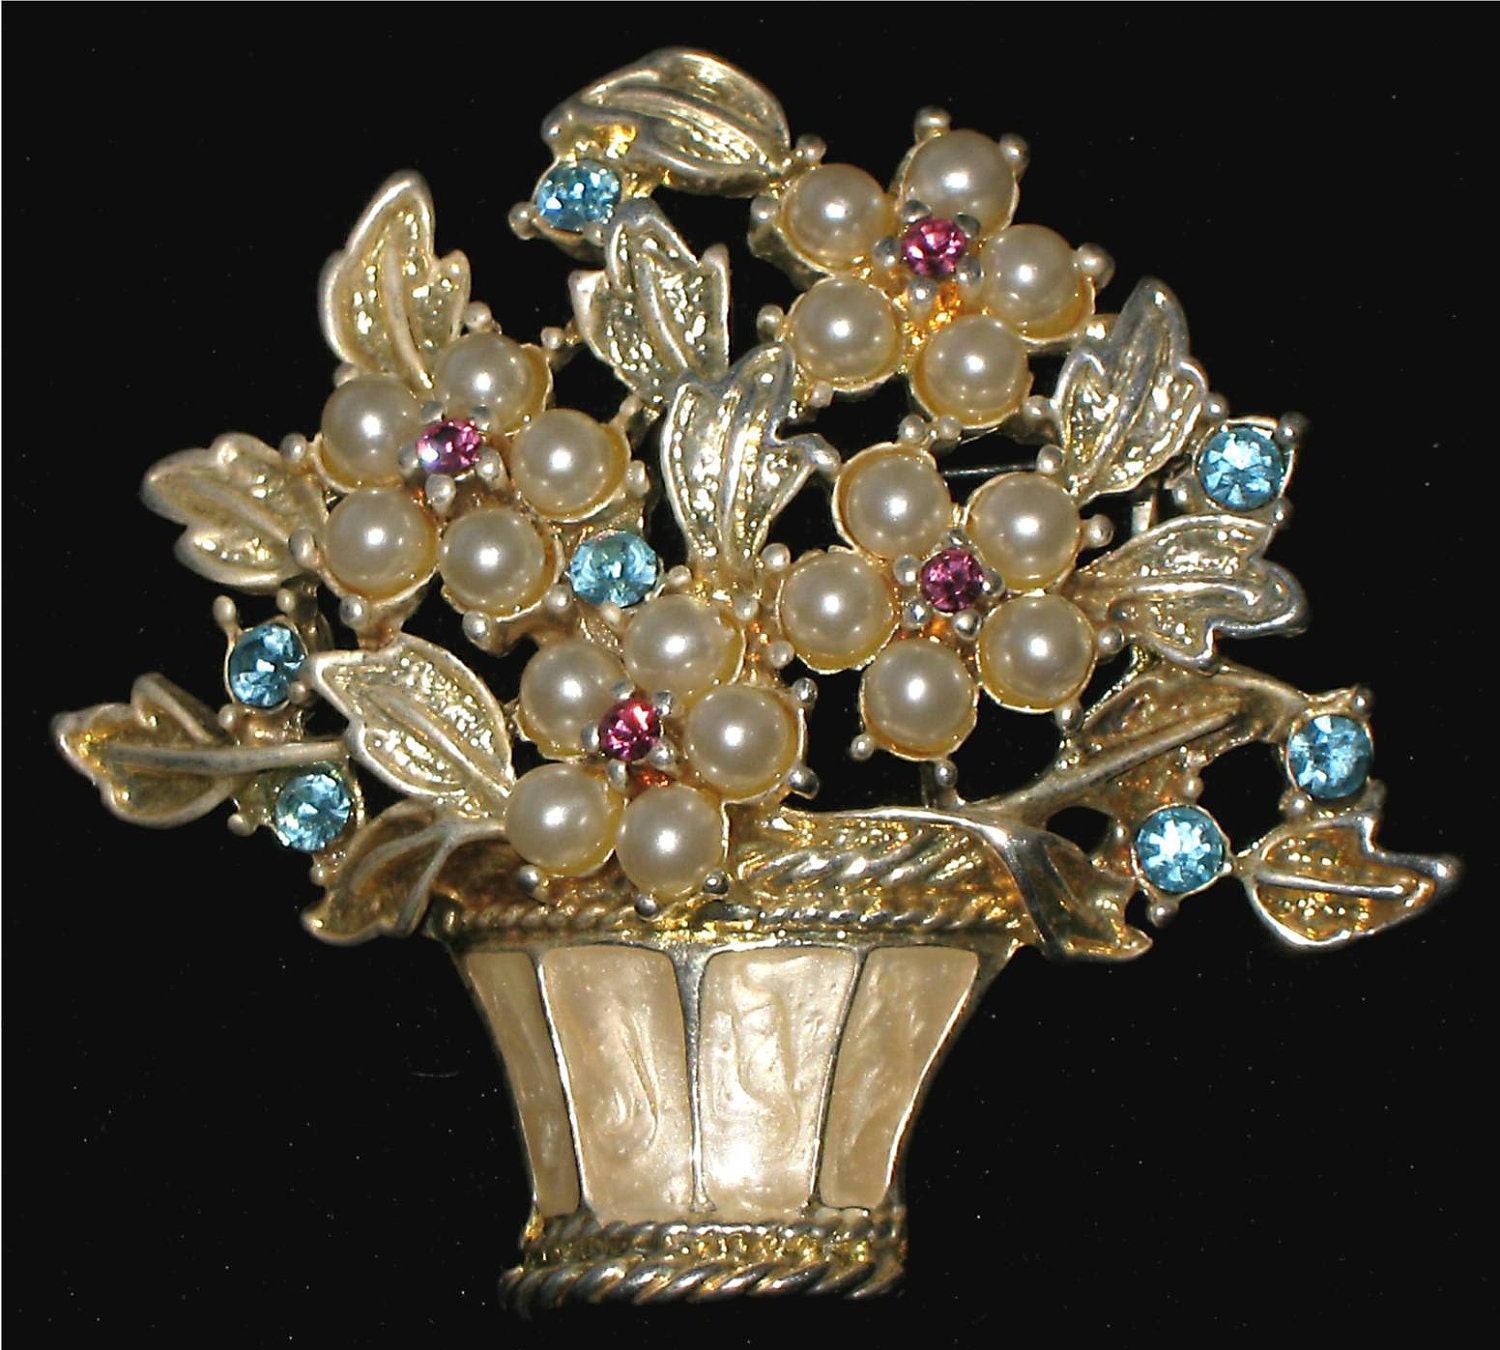 Vintage Brooch with Faux Pearls and Pink and Blue Rhinestones